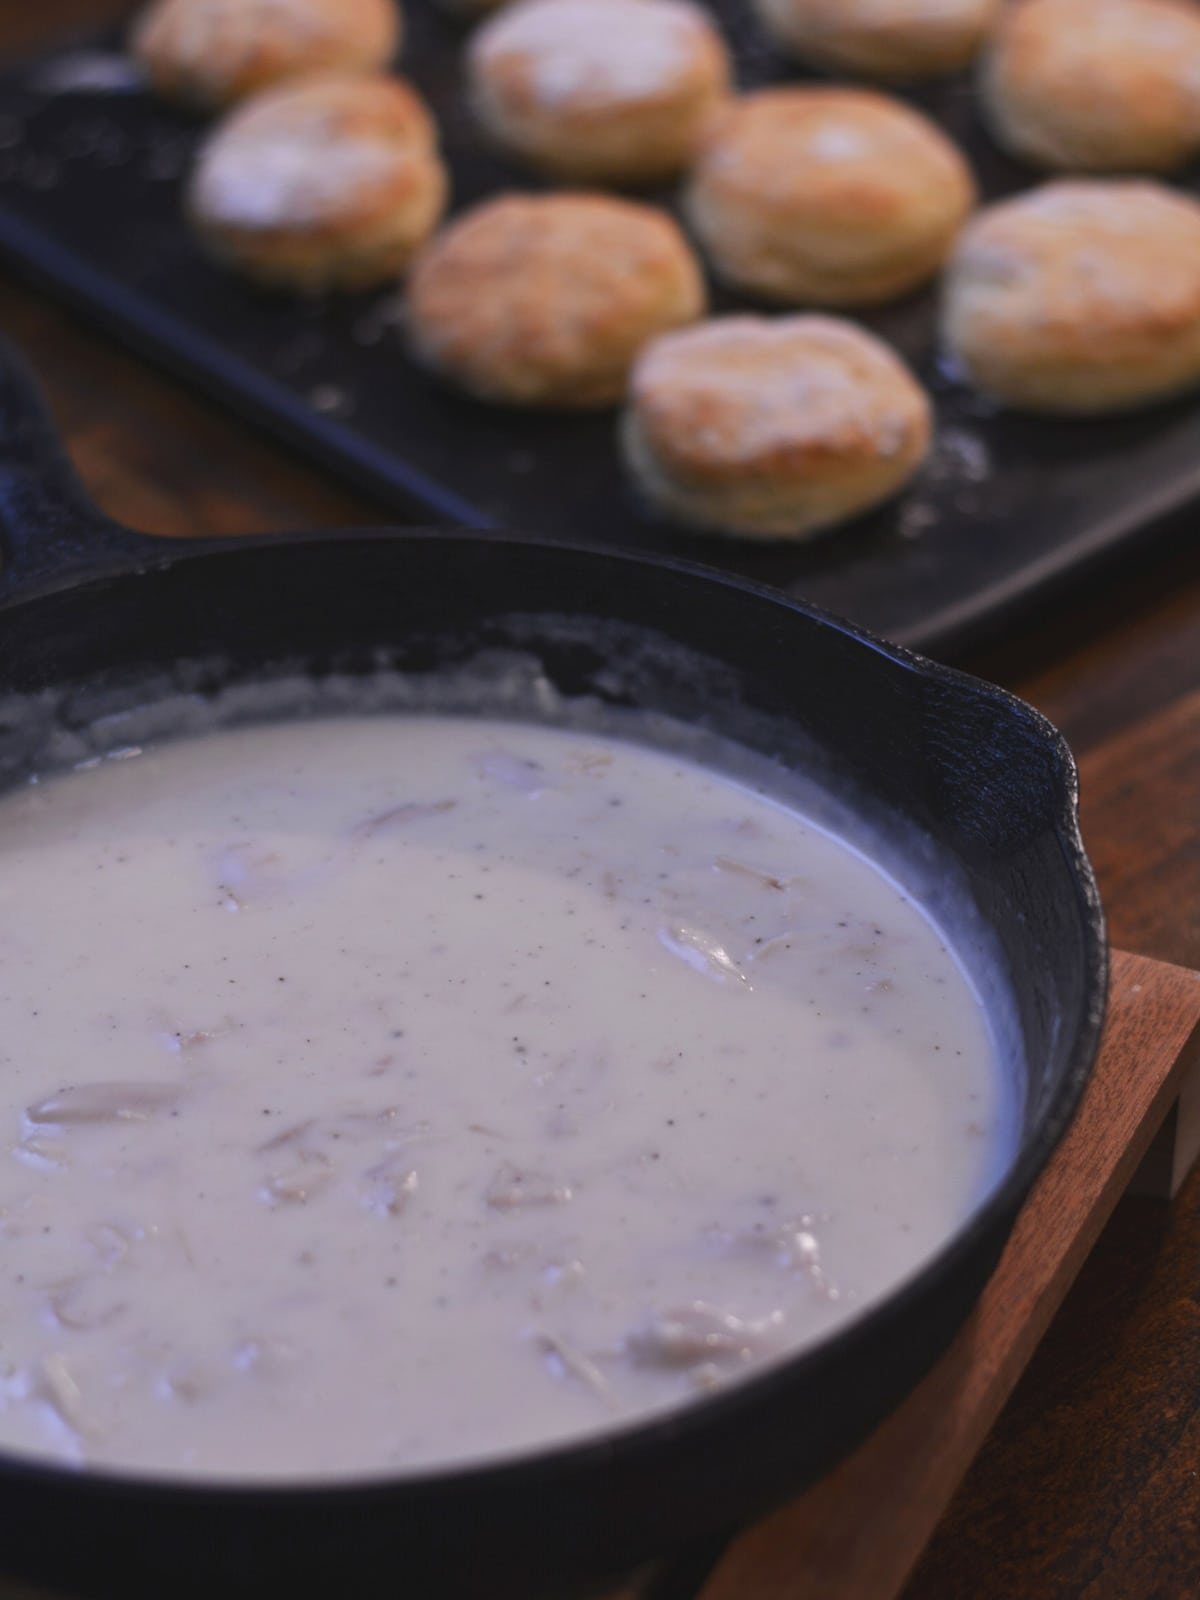 There are times when the most simple of recipes is simply the best. This Creamed Turkey on biscuits is one of those very recipes.